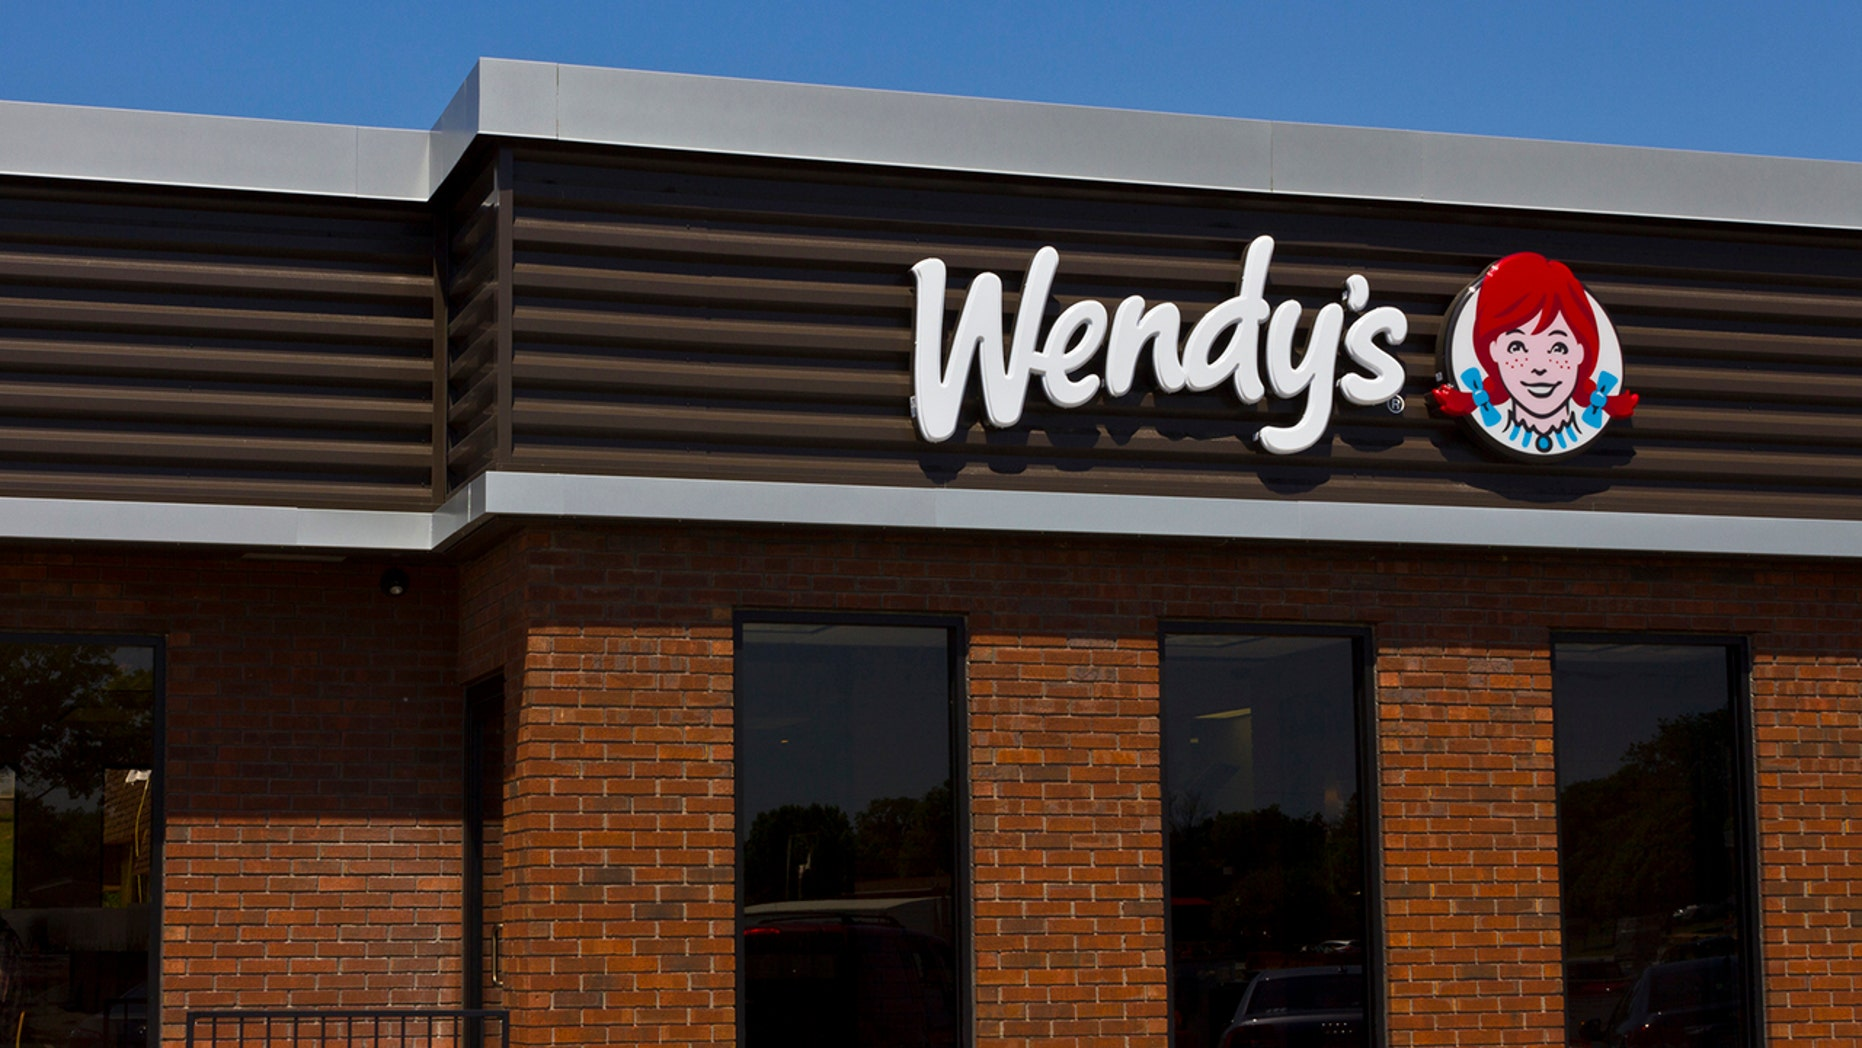 Wendy's has released a fiery mixtape that throws some serious shade at all of its fast food competitors.